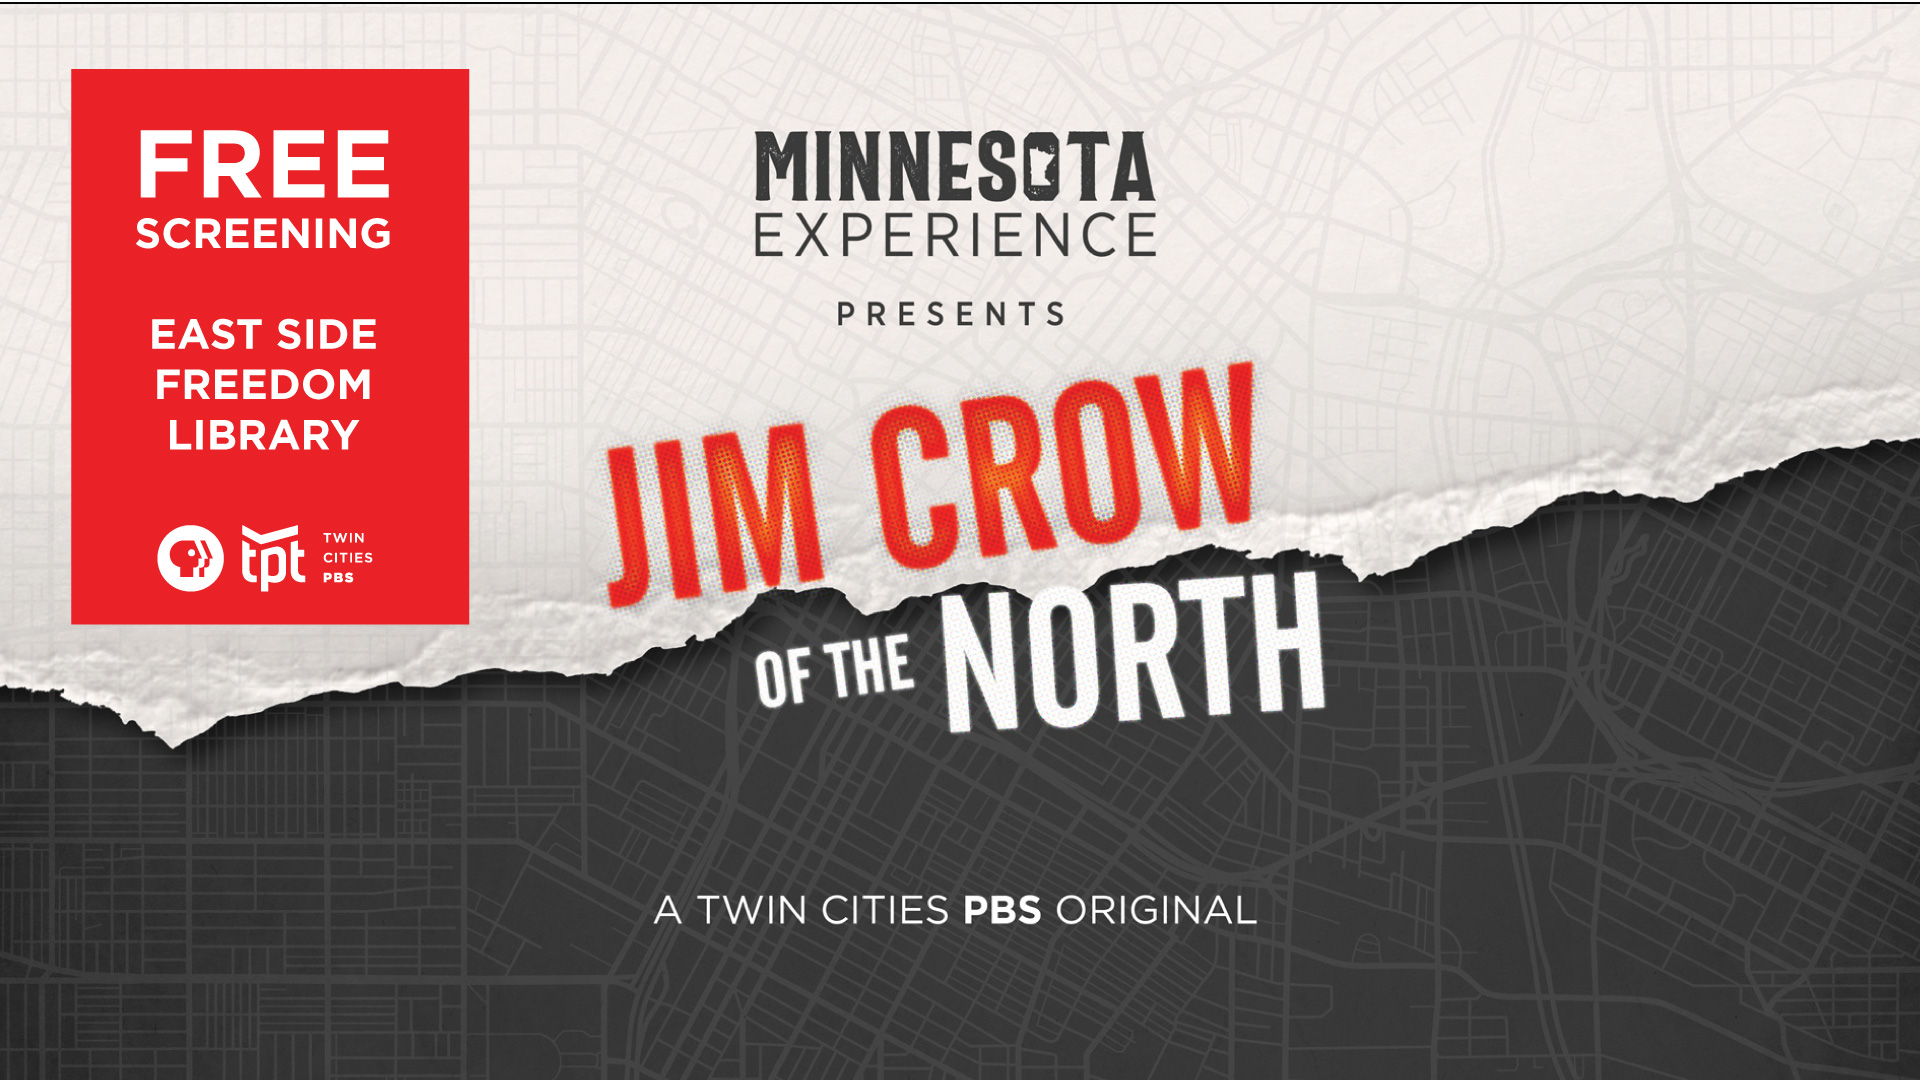 Minnesota Experience Presents: Jim Crow of the North at the East Side Freedom Library